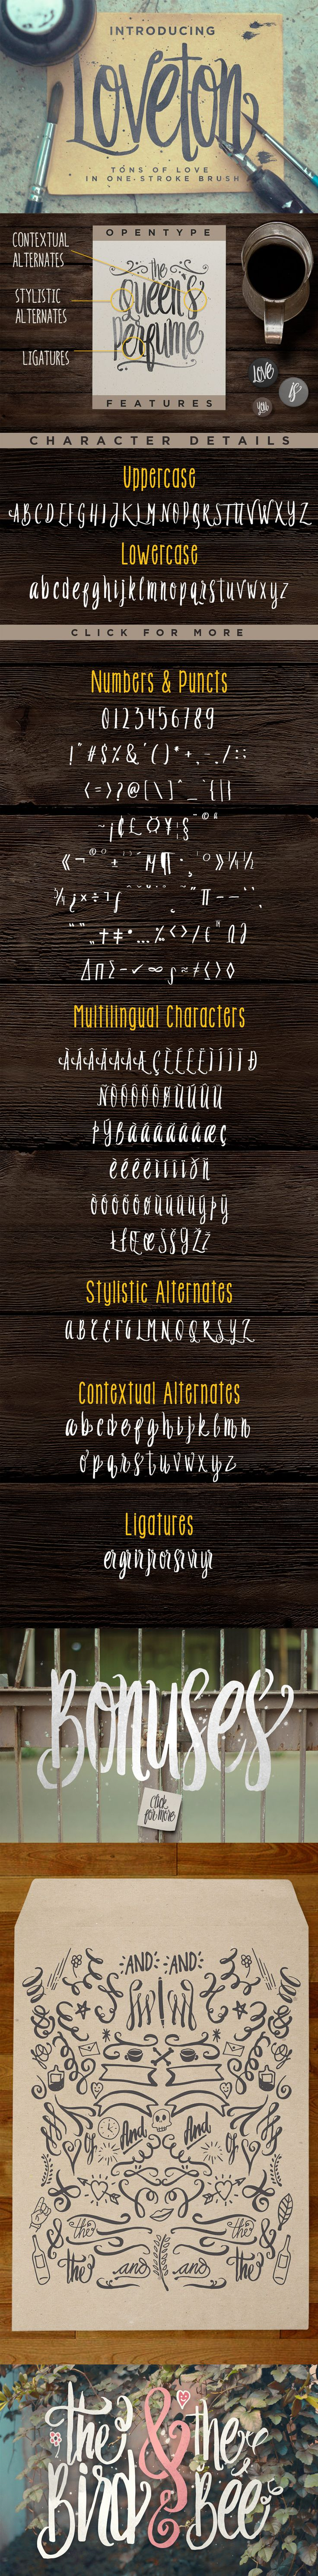 Loveton Typeface Font by Irwanismoyo | 22 Professional & Artistic Fonts Apr 2015